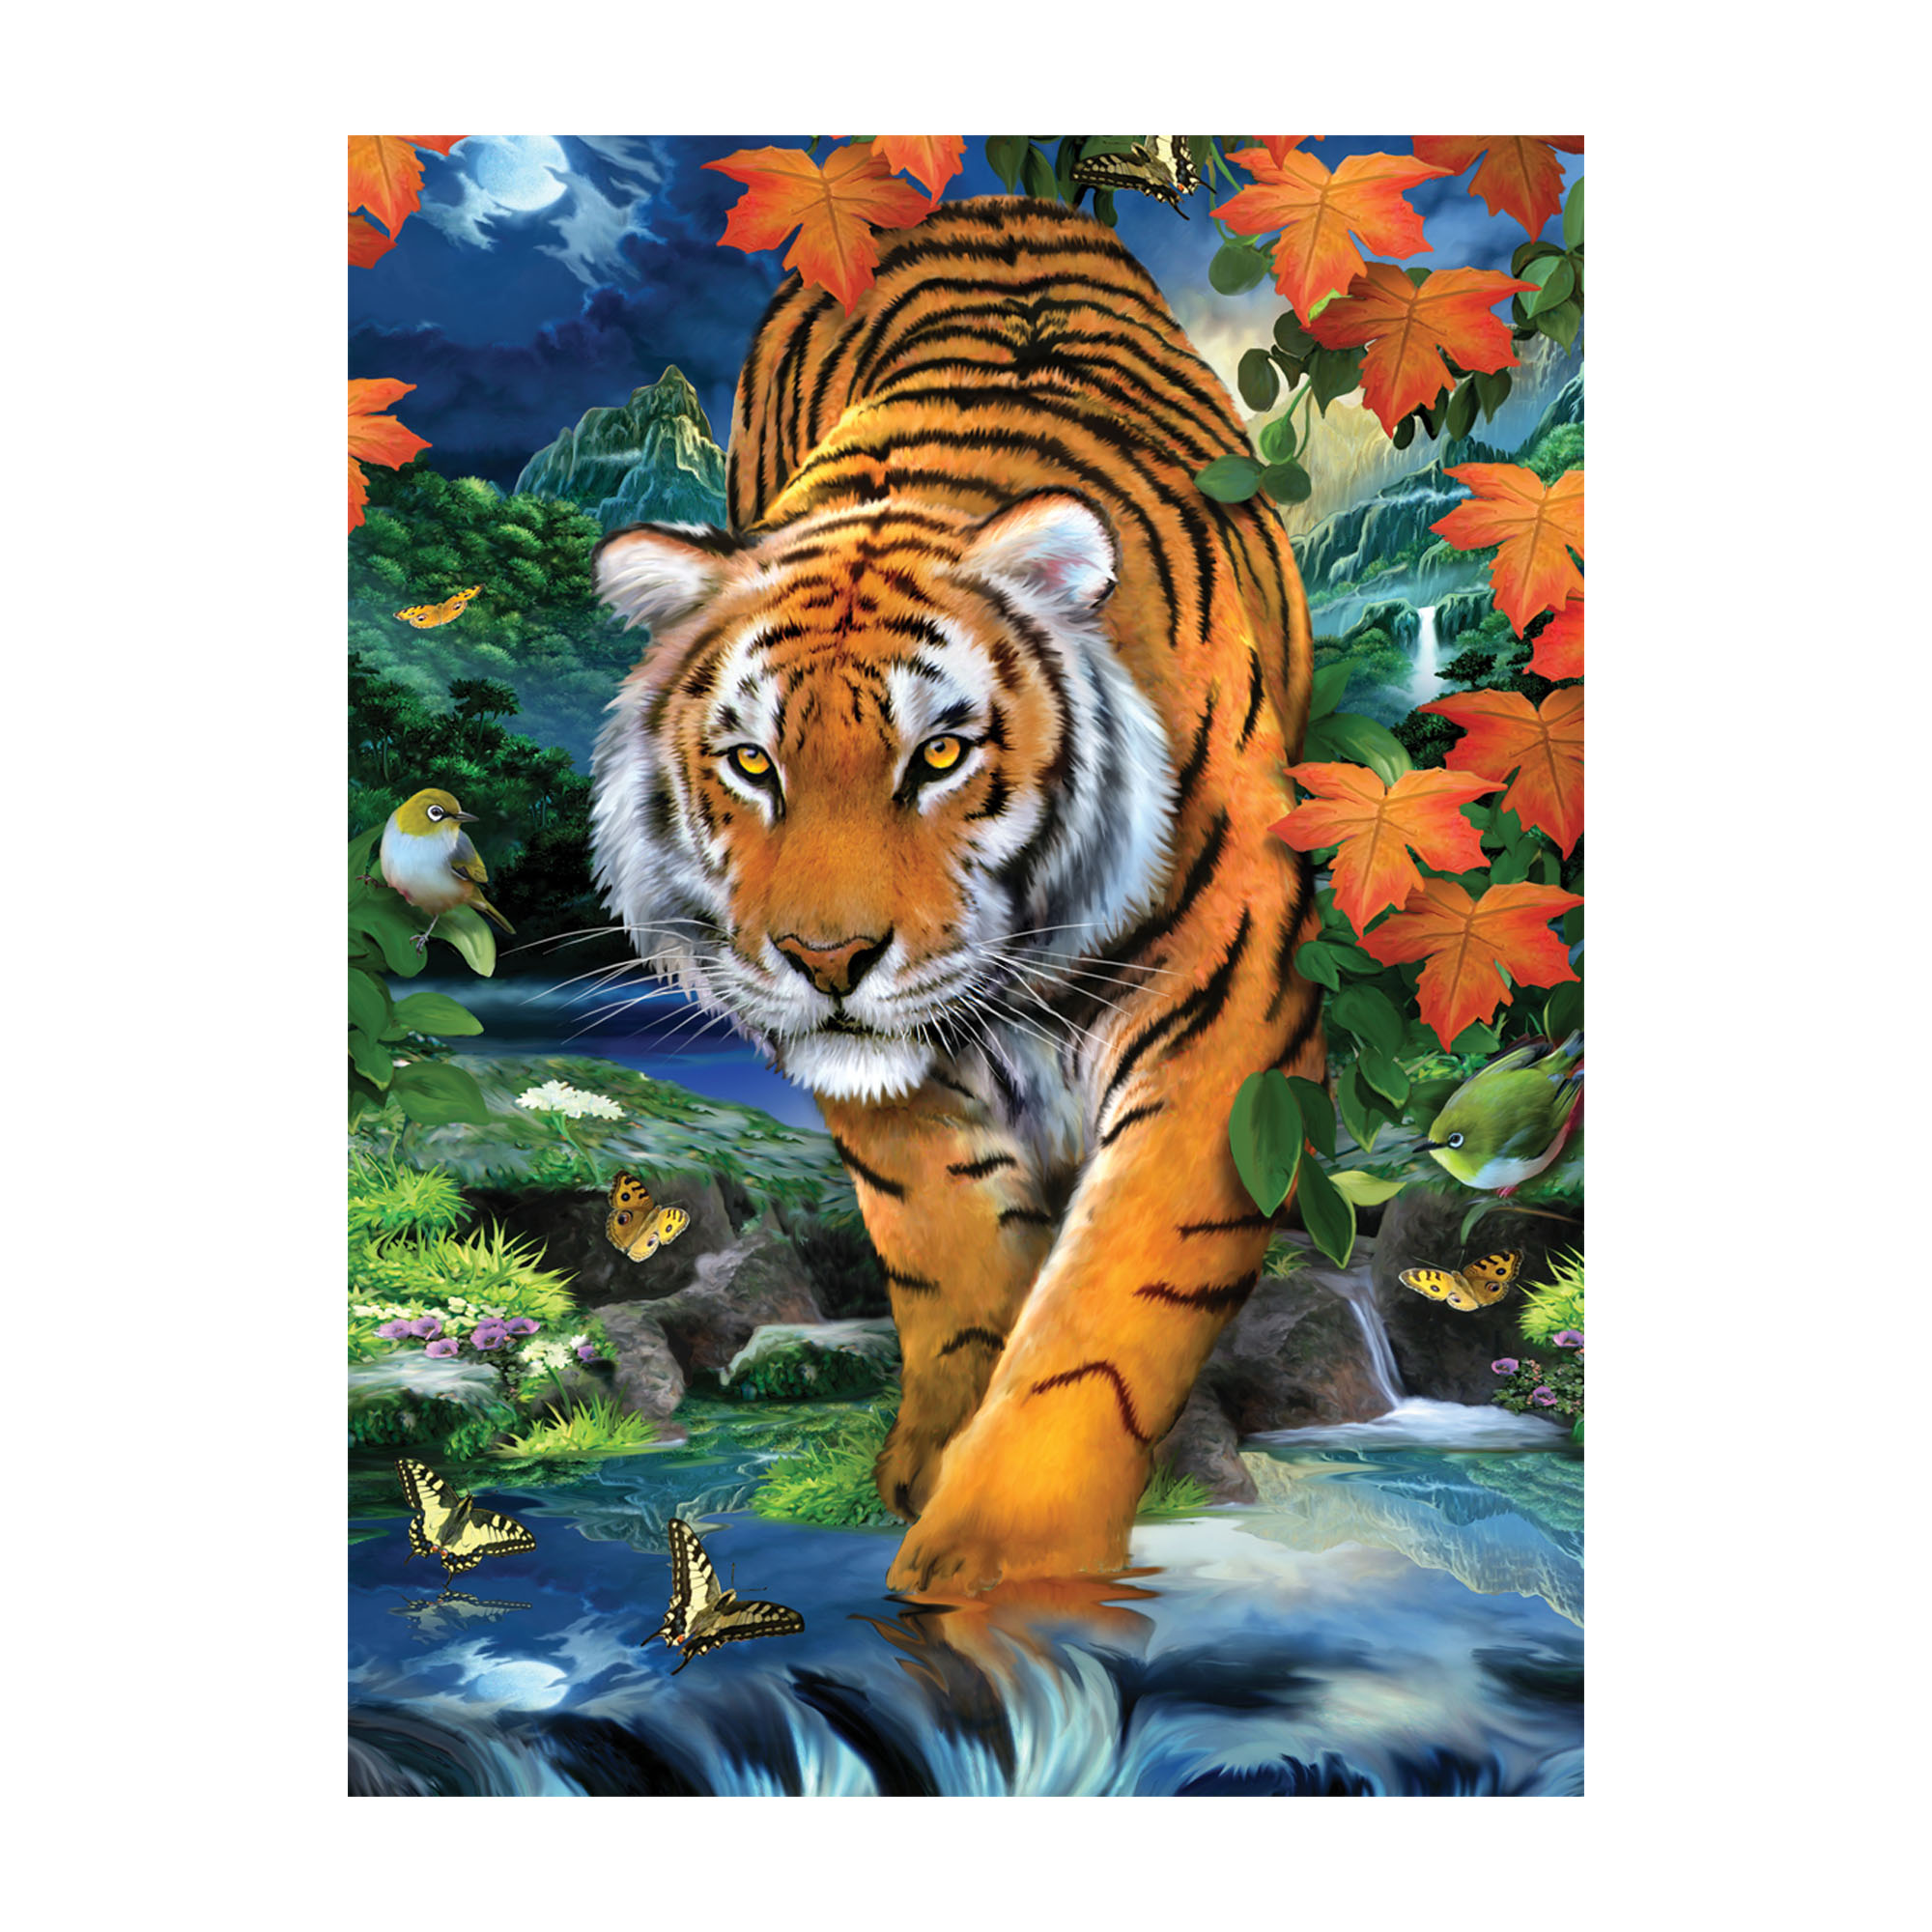 Tiger on the prowl painting by number kit